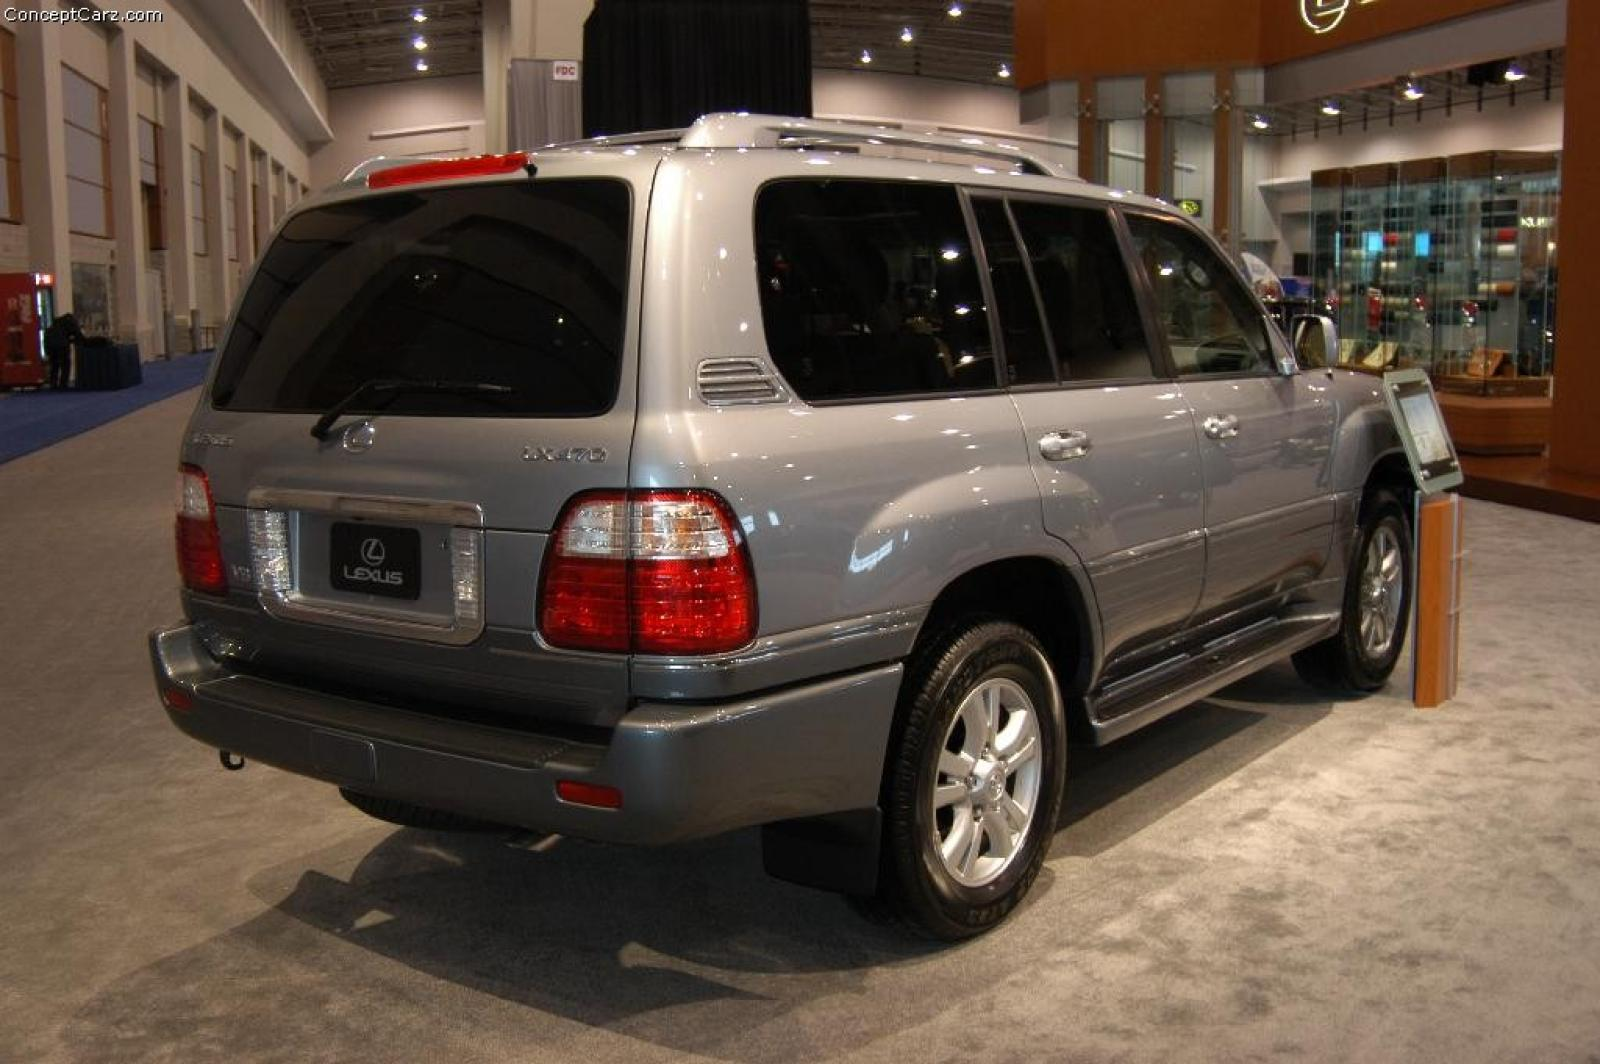 2004 lexus lx 470 information and photos zombiedrive. Black Bedroom Furniture Sets. Home Design Ideas